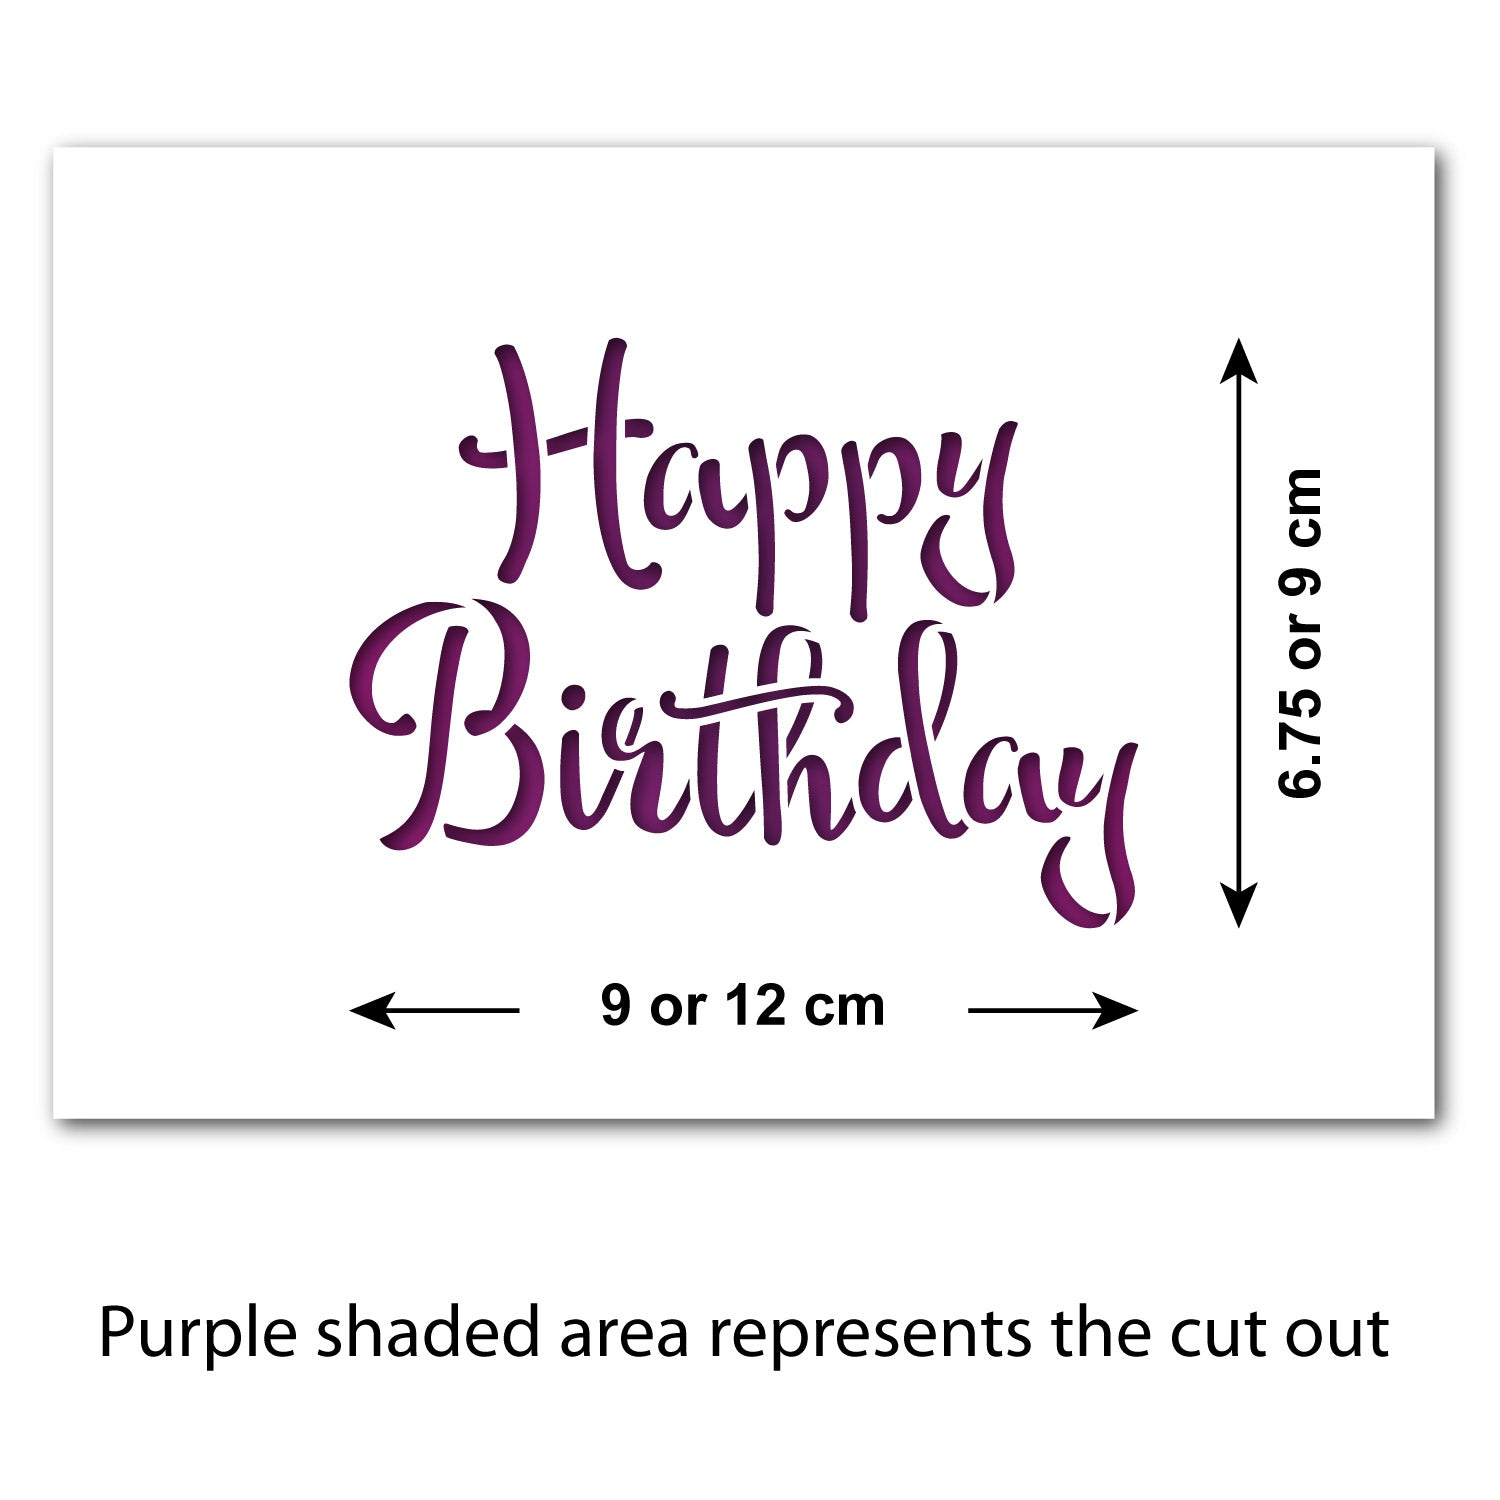 CraftStar Happy Birthday Stencil - Size Guide